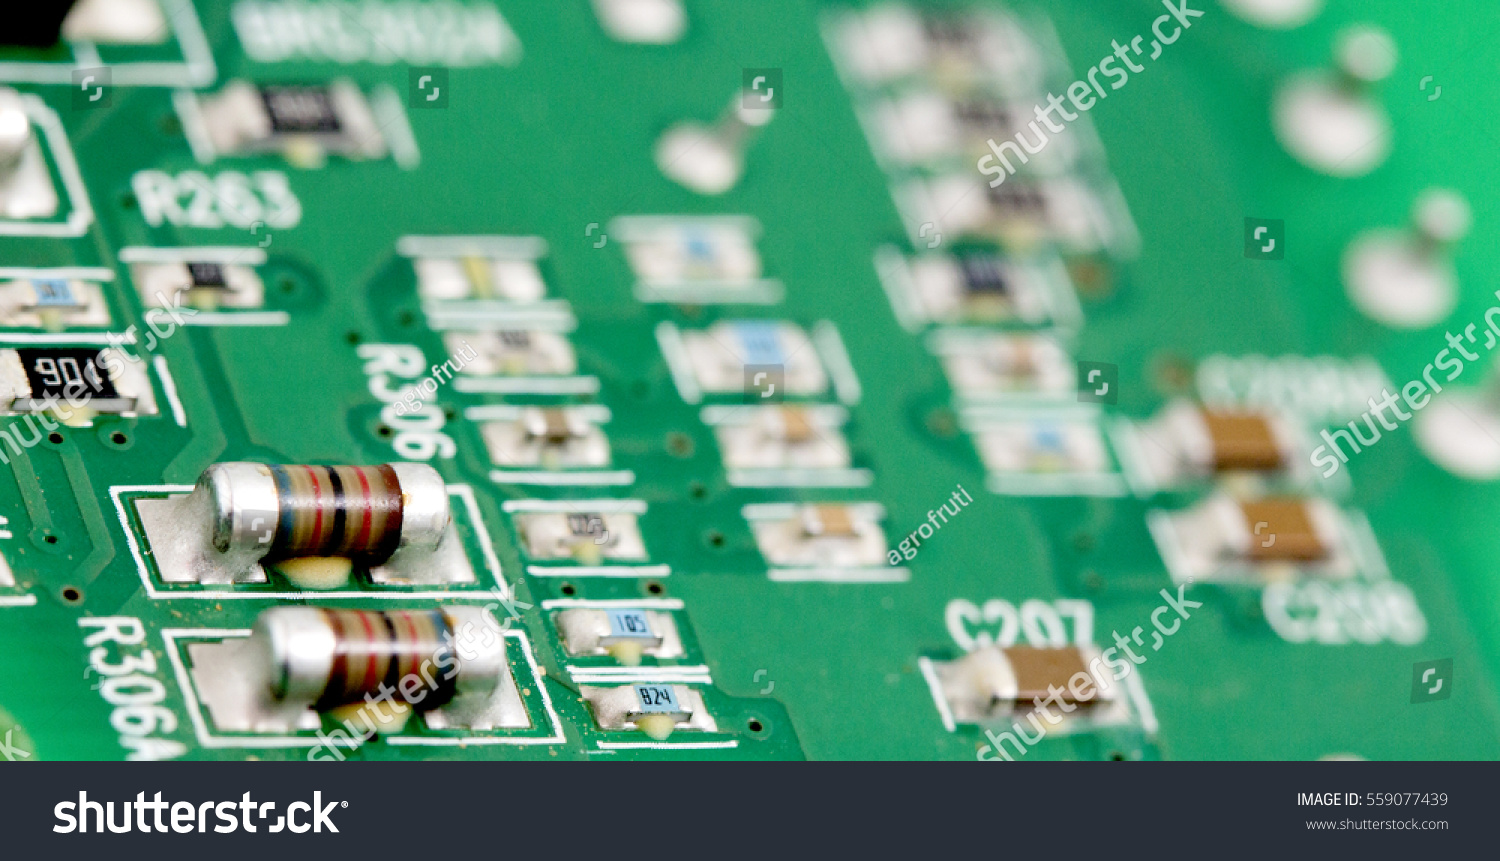 Macro Electronic Printed Circuit Board Many Stock Photo Edit Now With Electrical Components Of An Componentsshallow Dof